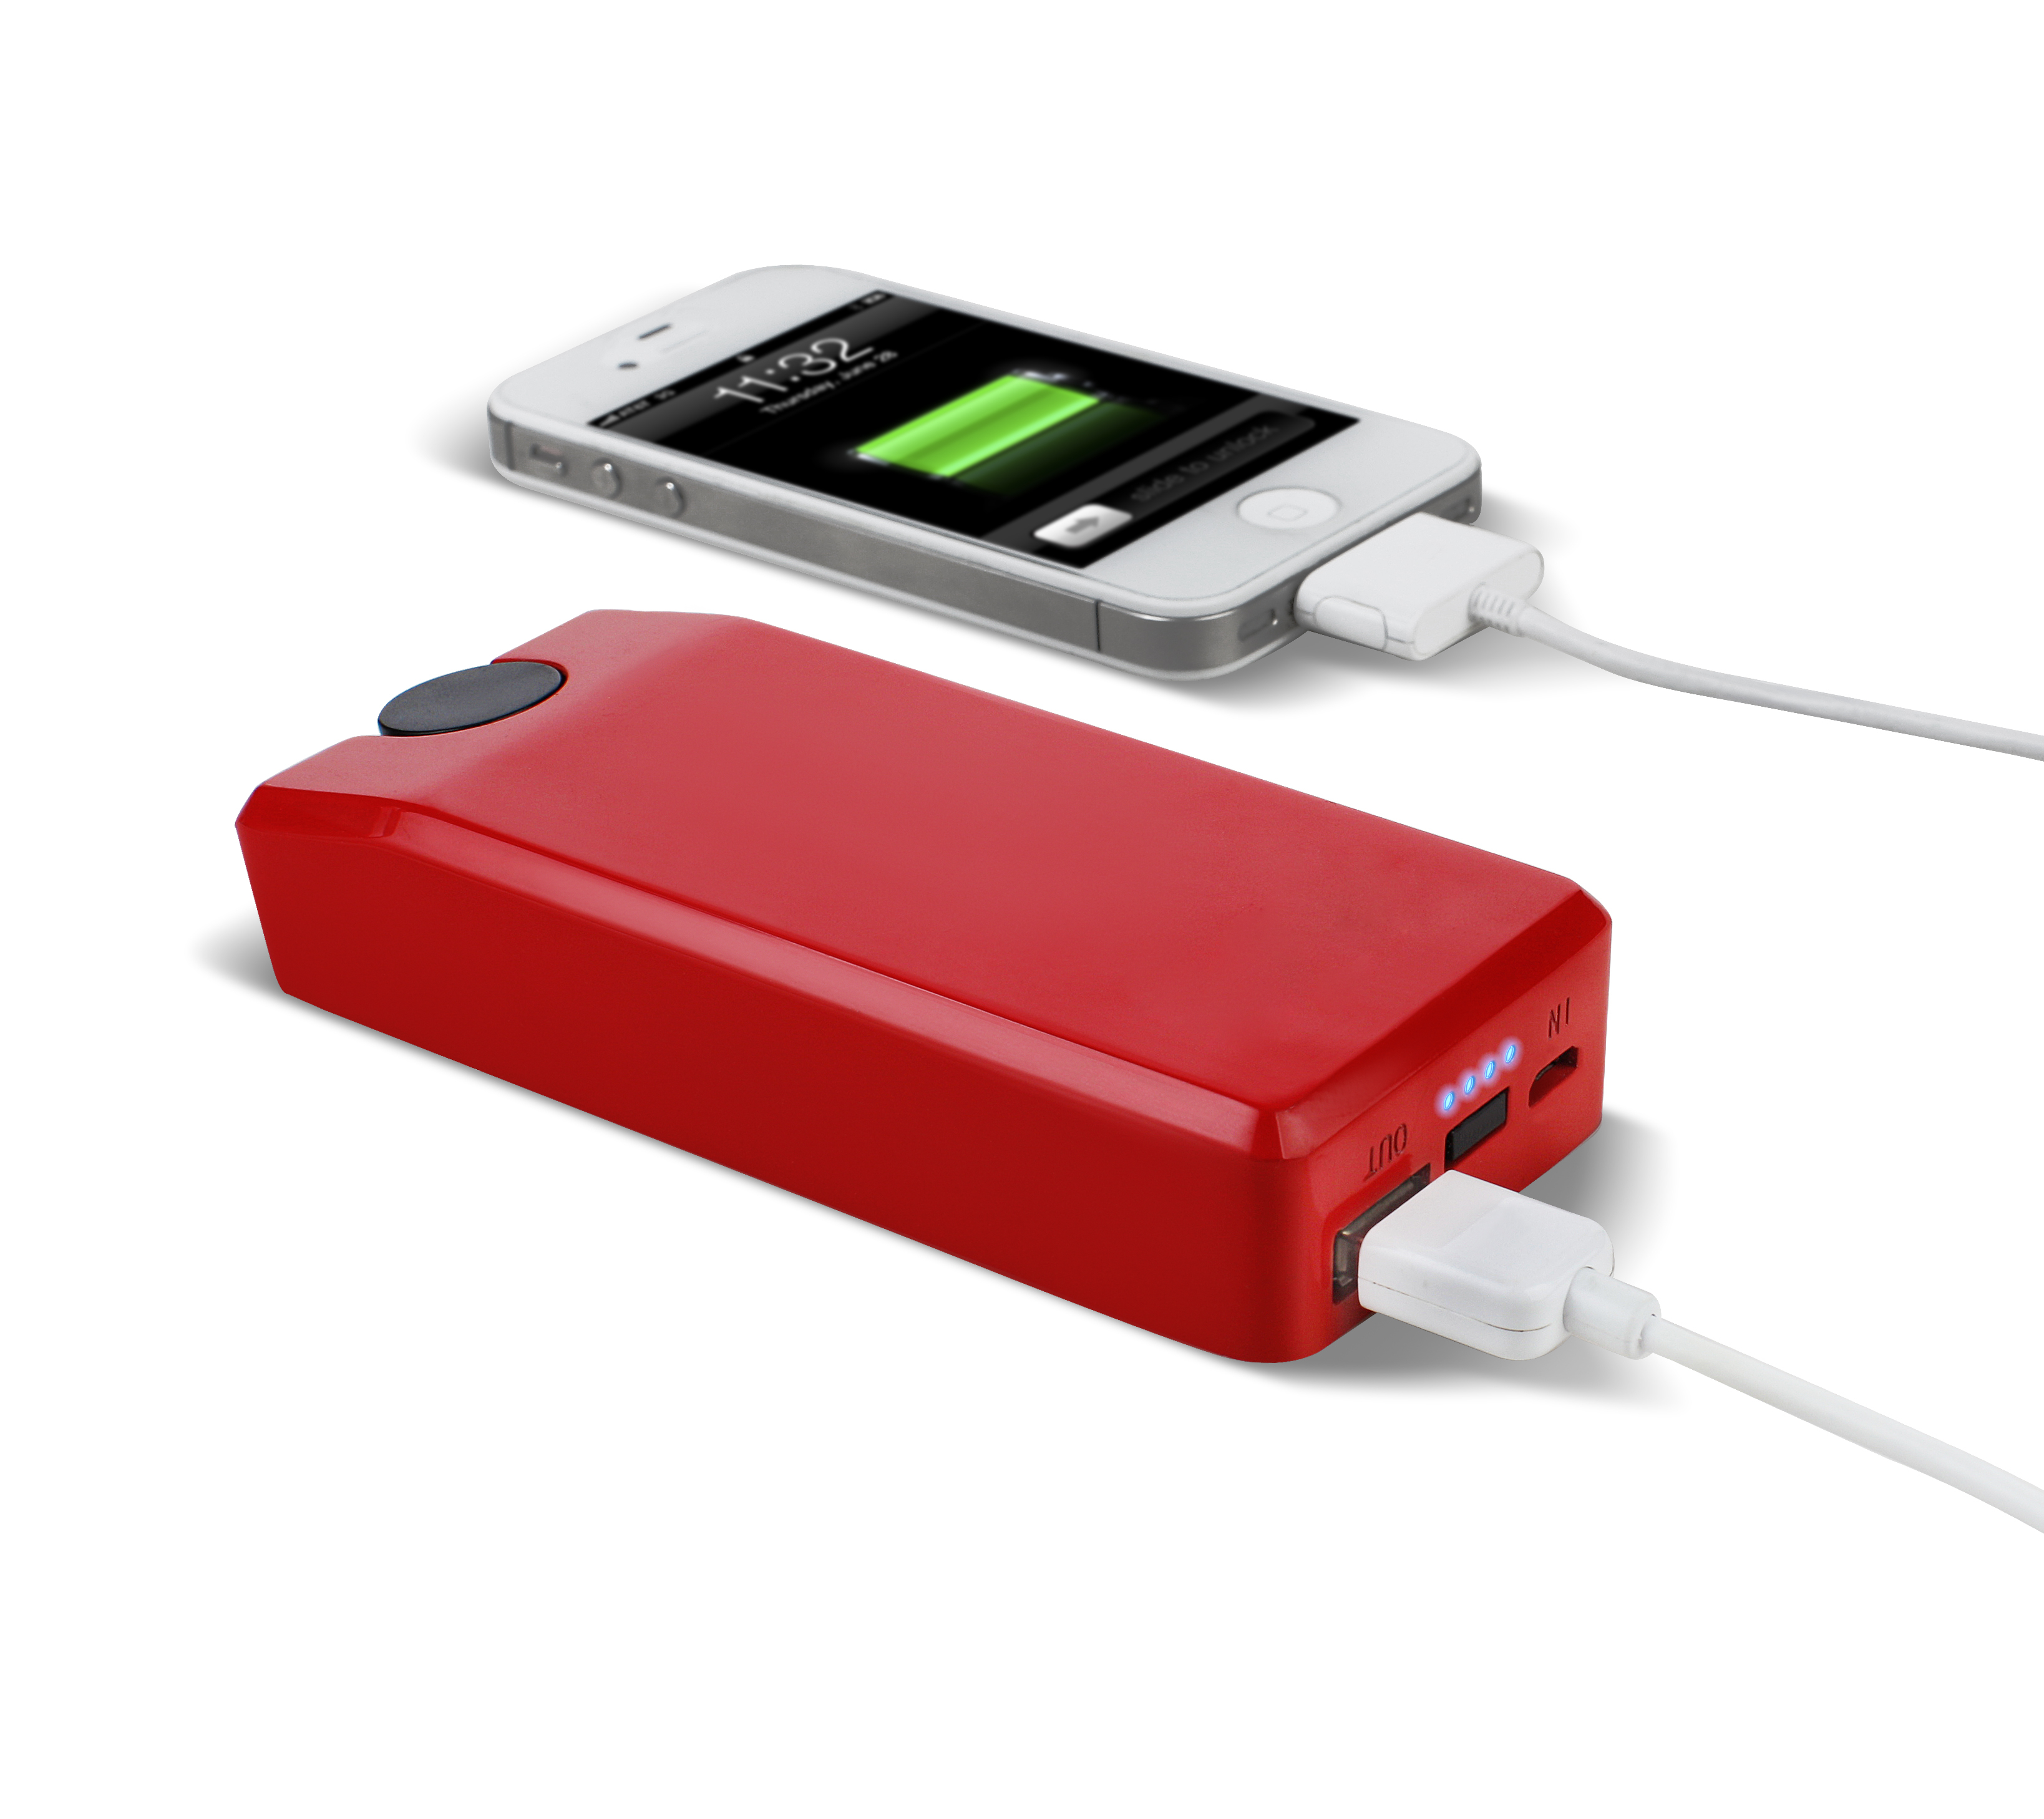 Soulra Lextronix Boost Turbine 2000 external battery for mobile phones (2000 mAh) (red)